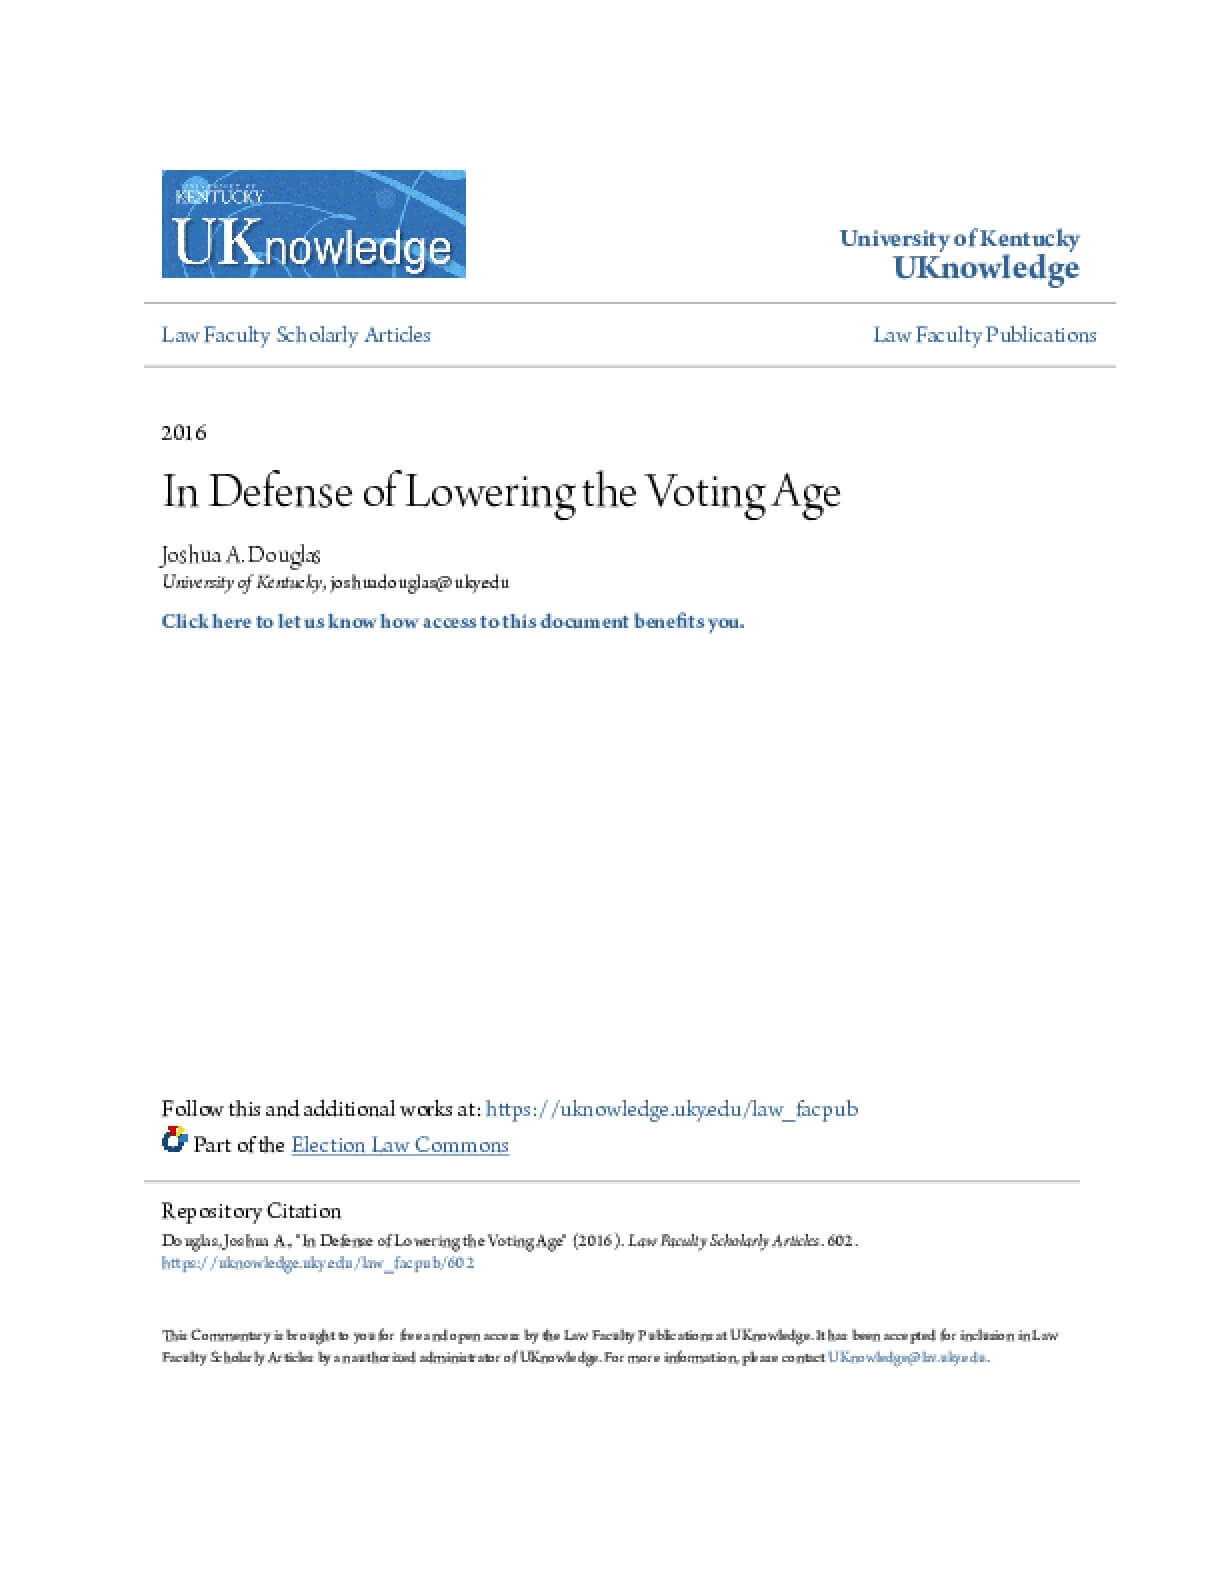 In Defense of Lowering the Voting Age